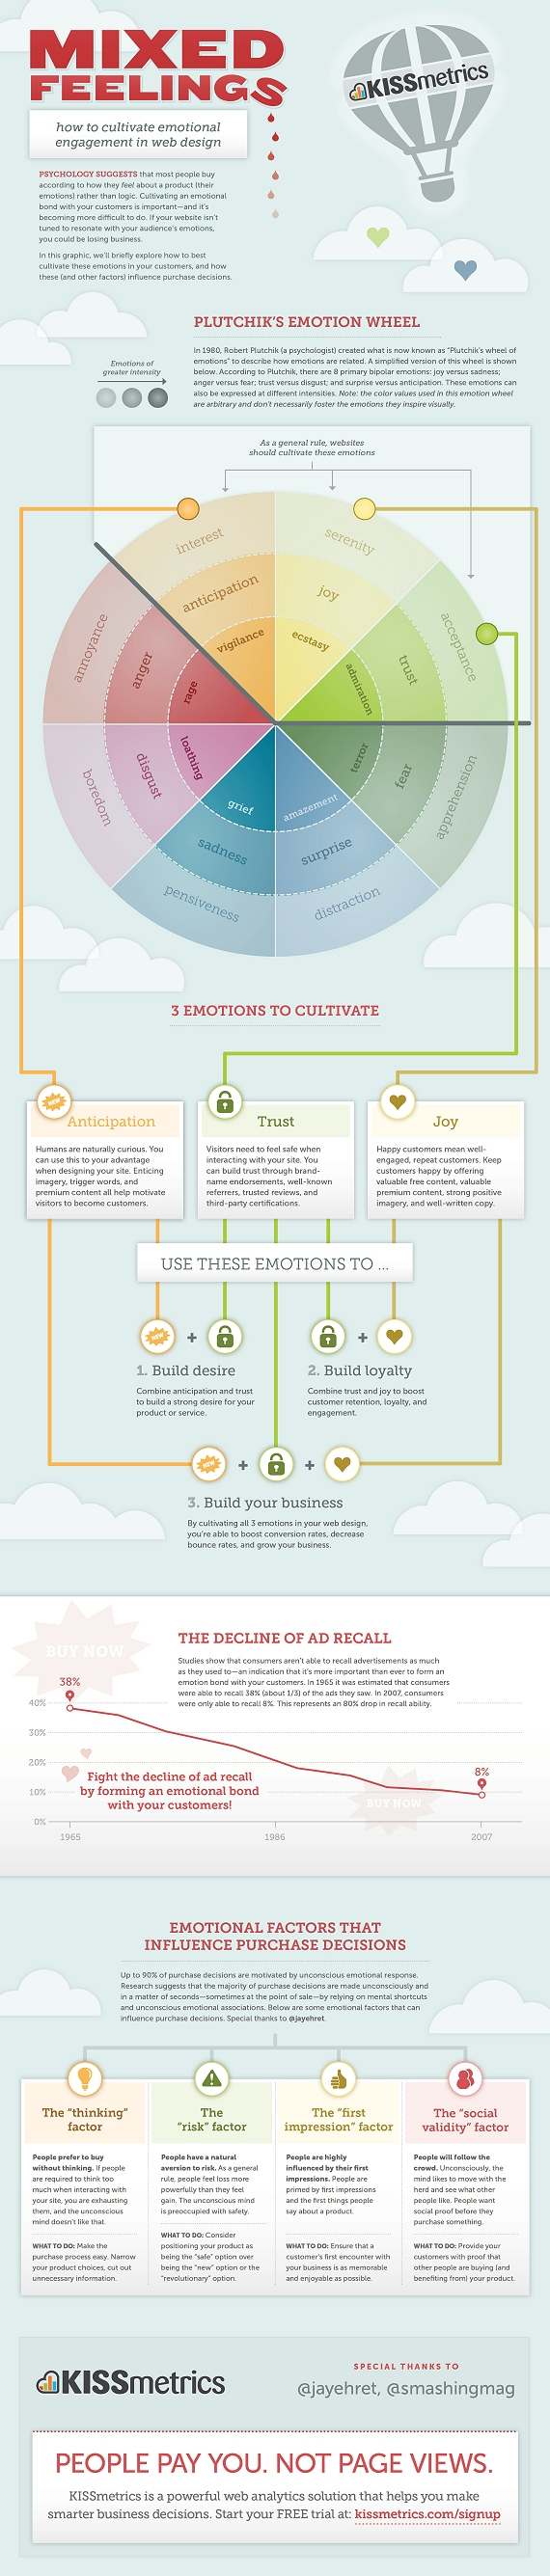 Mixed Feelings – How To Cultivate Emotional Engagement In Web Design